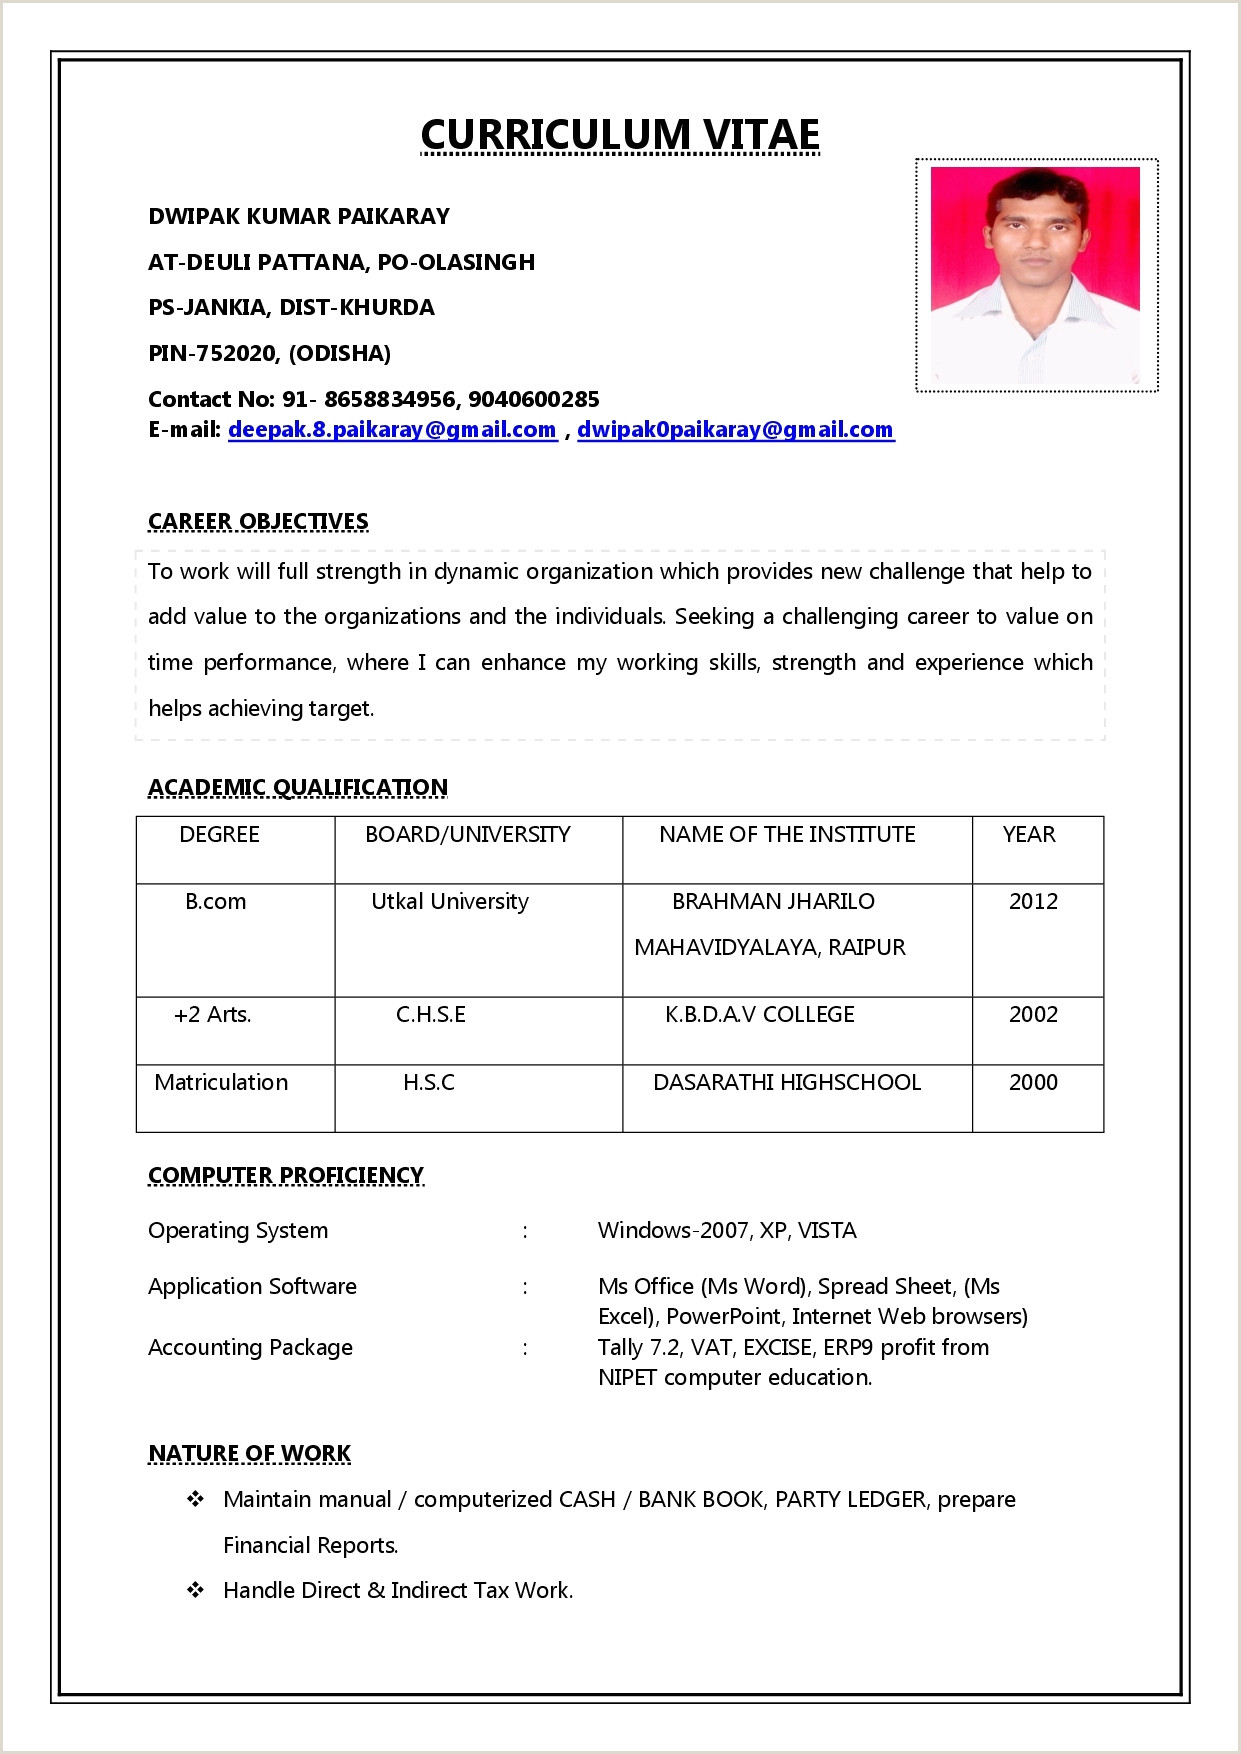 Resume format for Bank Job Fresher Pdf 10 Sample Resume for Banking Jobs